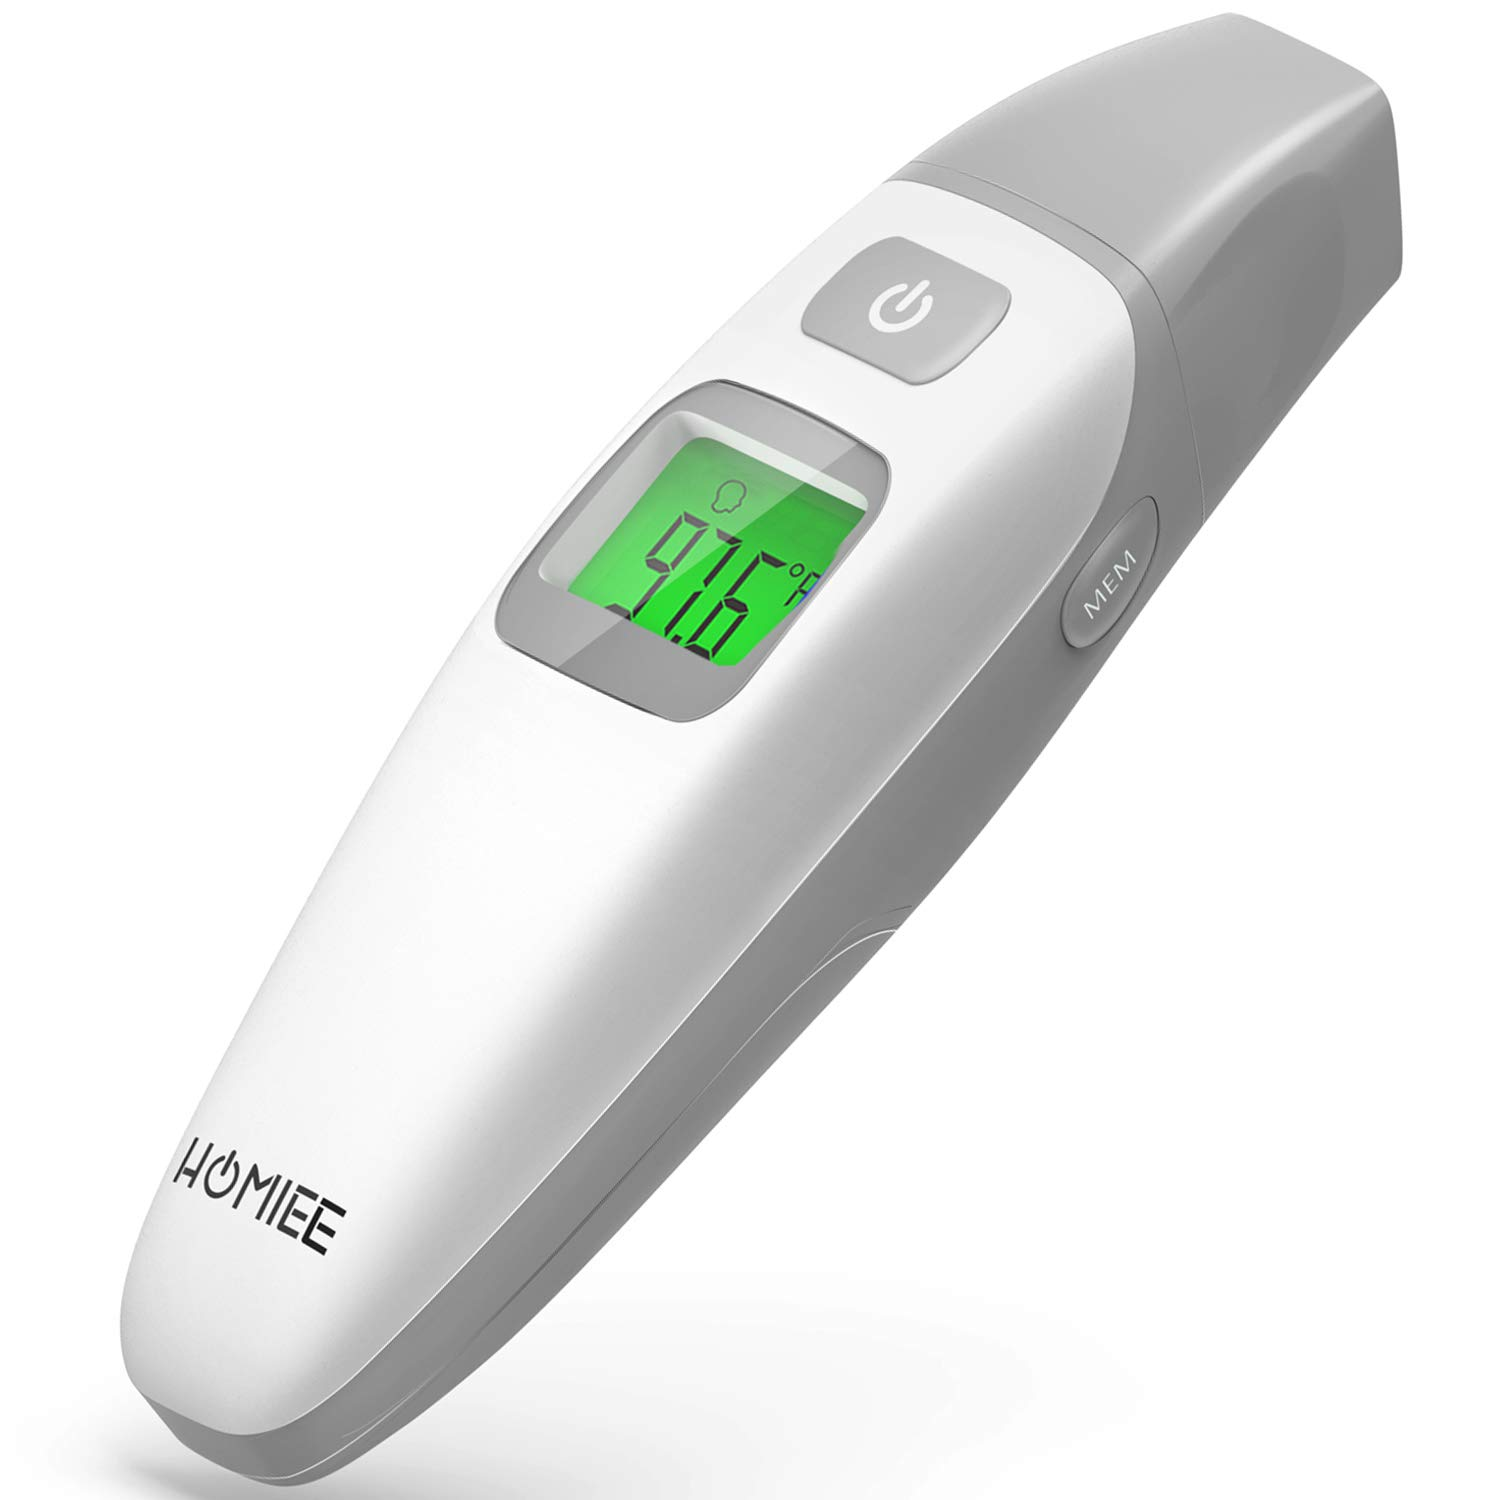 Best Infant Thermometer 2020 Amazon.com: HOMIEE Baby Thermometer, Ear and Forehead Thermometer